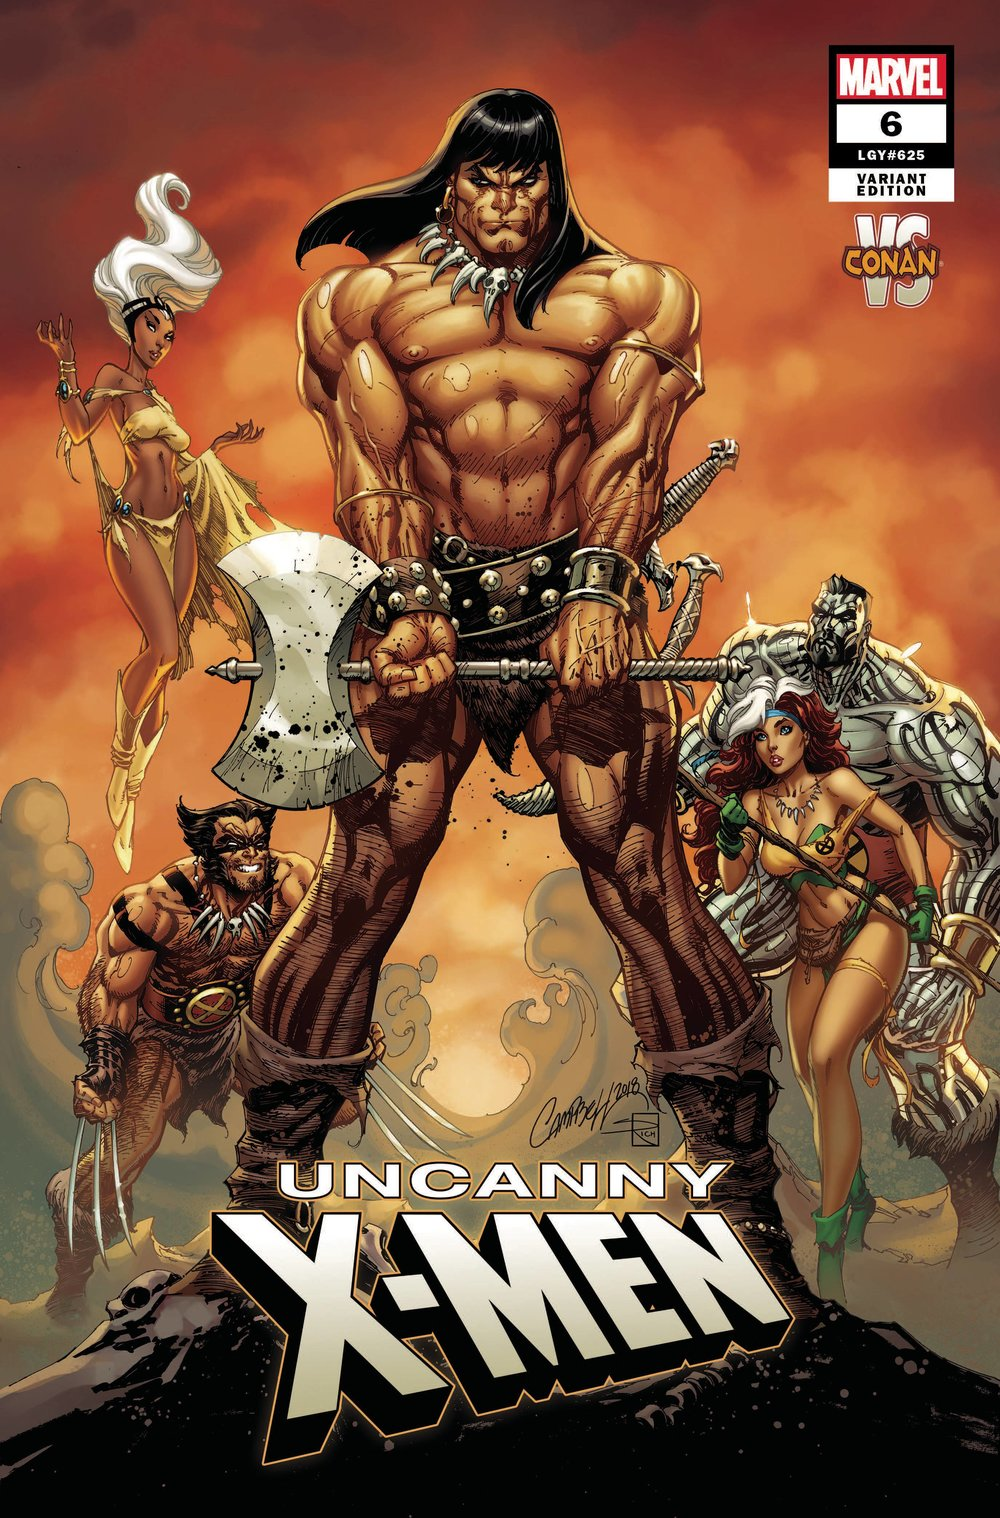 UNCANNY X-MEN 6 JSC CONAN VS MARVEL VAR.jpg